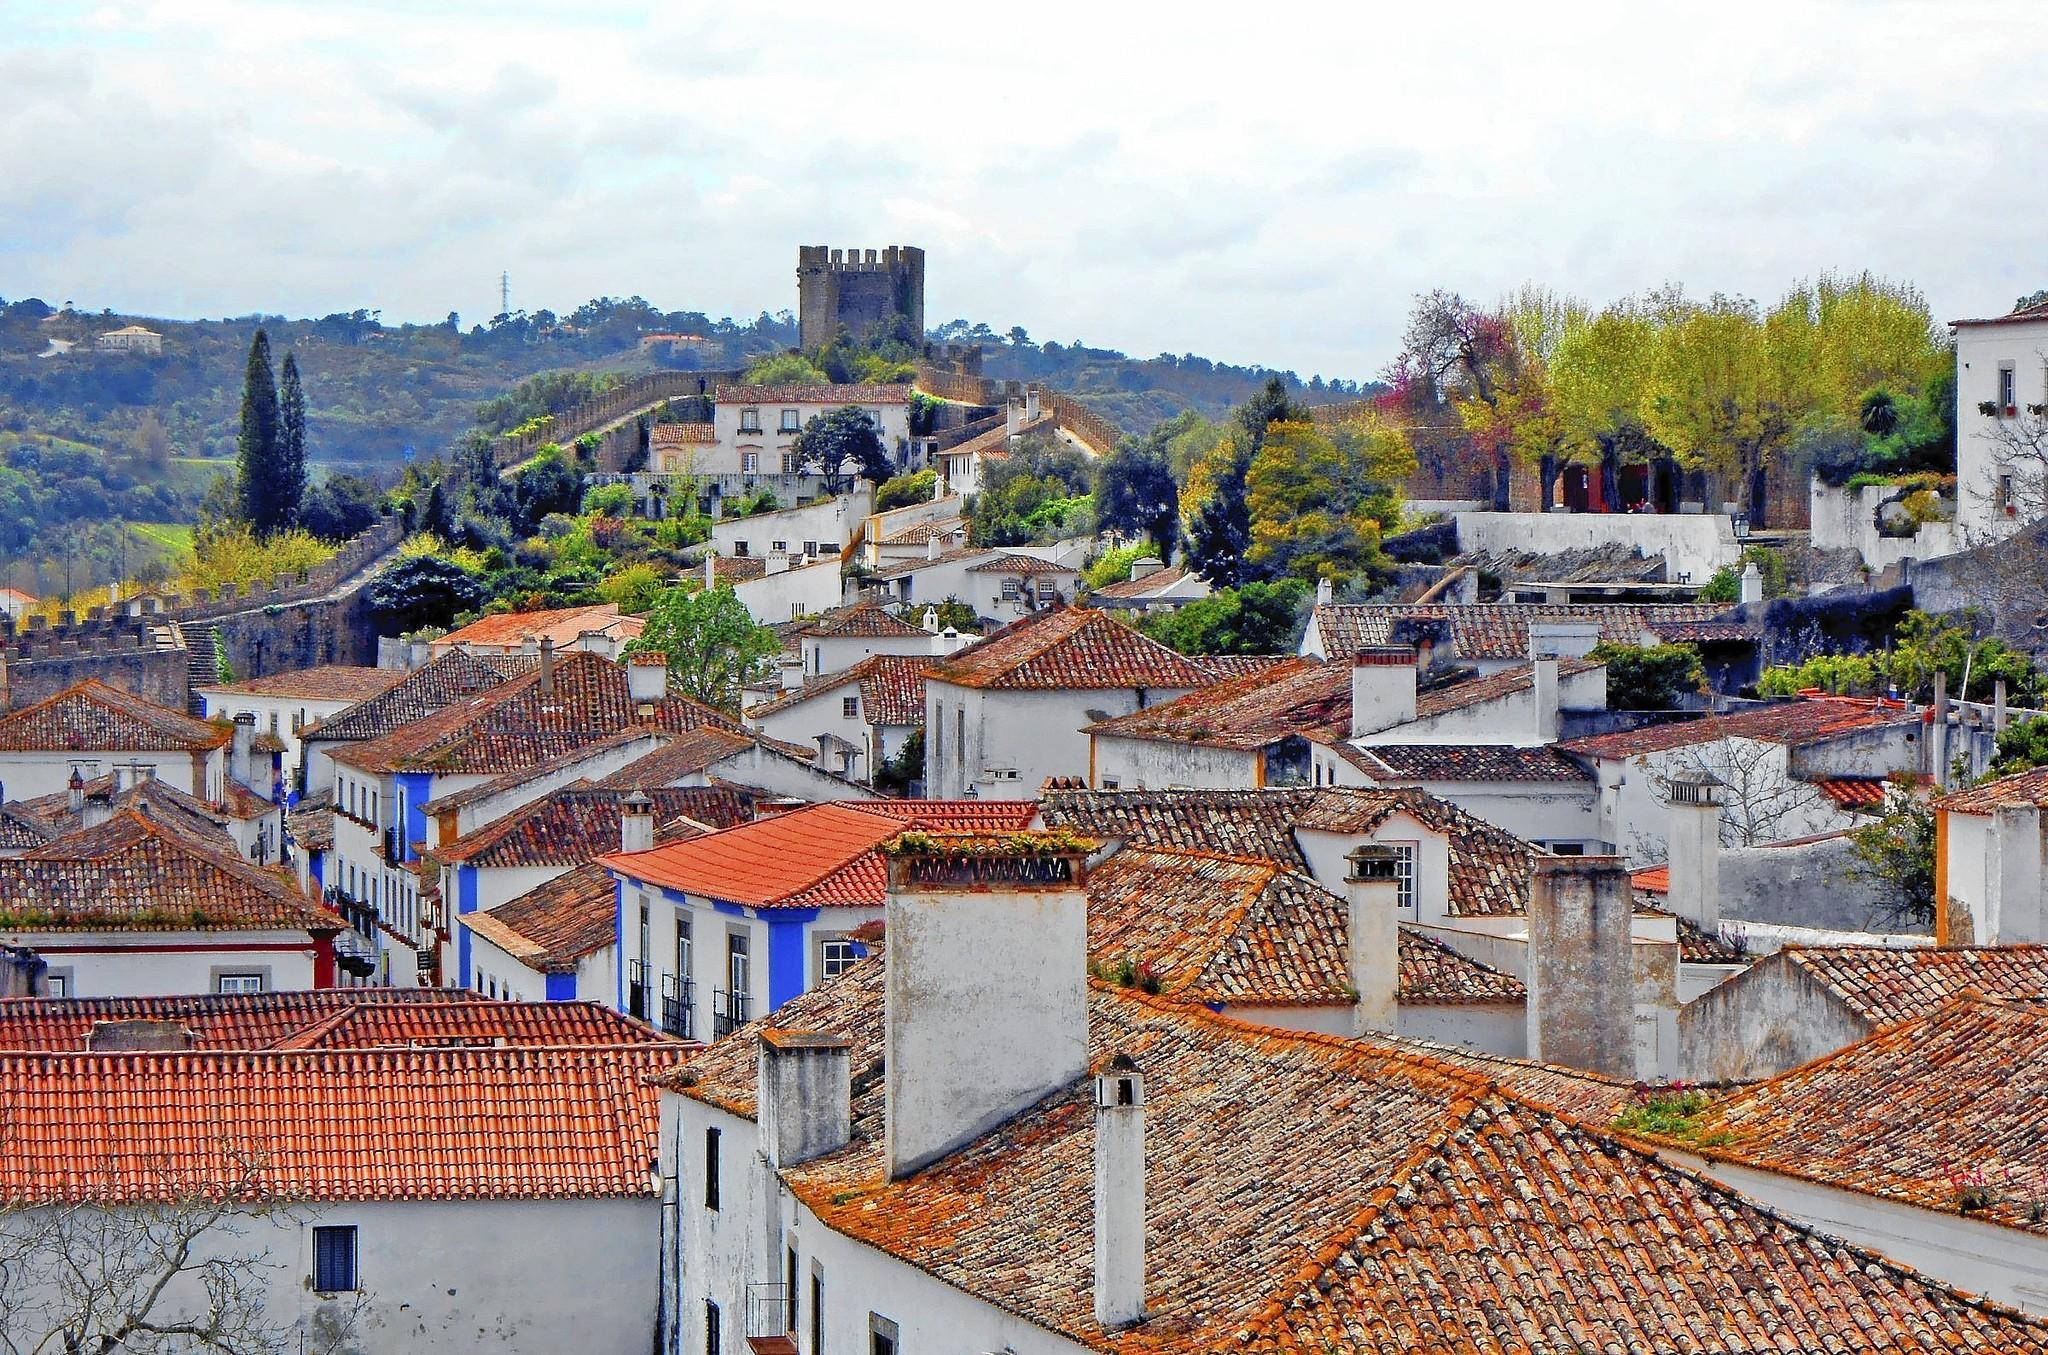 Looking out over the white washed, red-tiled homes and businesses of Obidos, a walled medieval village about an hour north of Lisbon, Portugal.